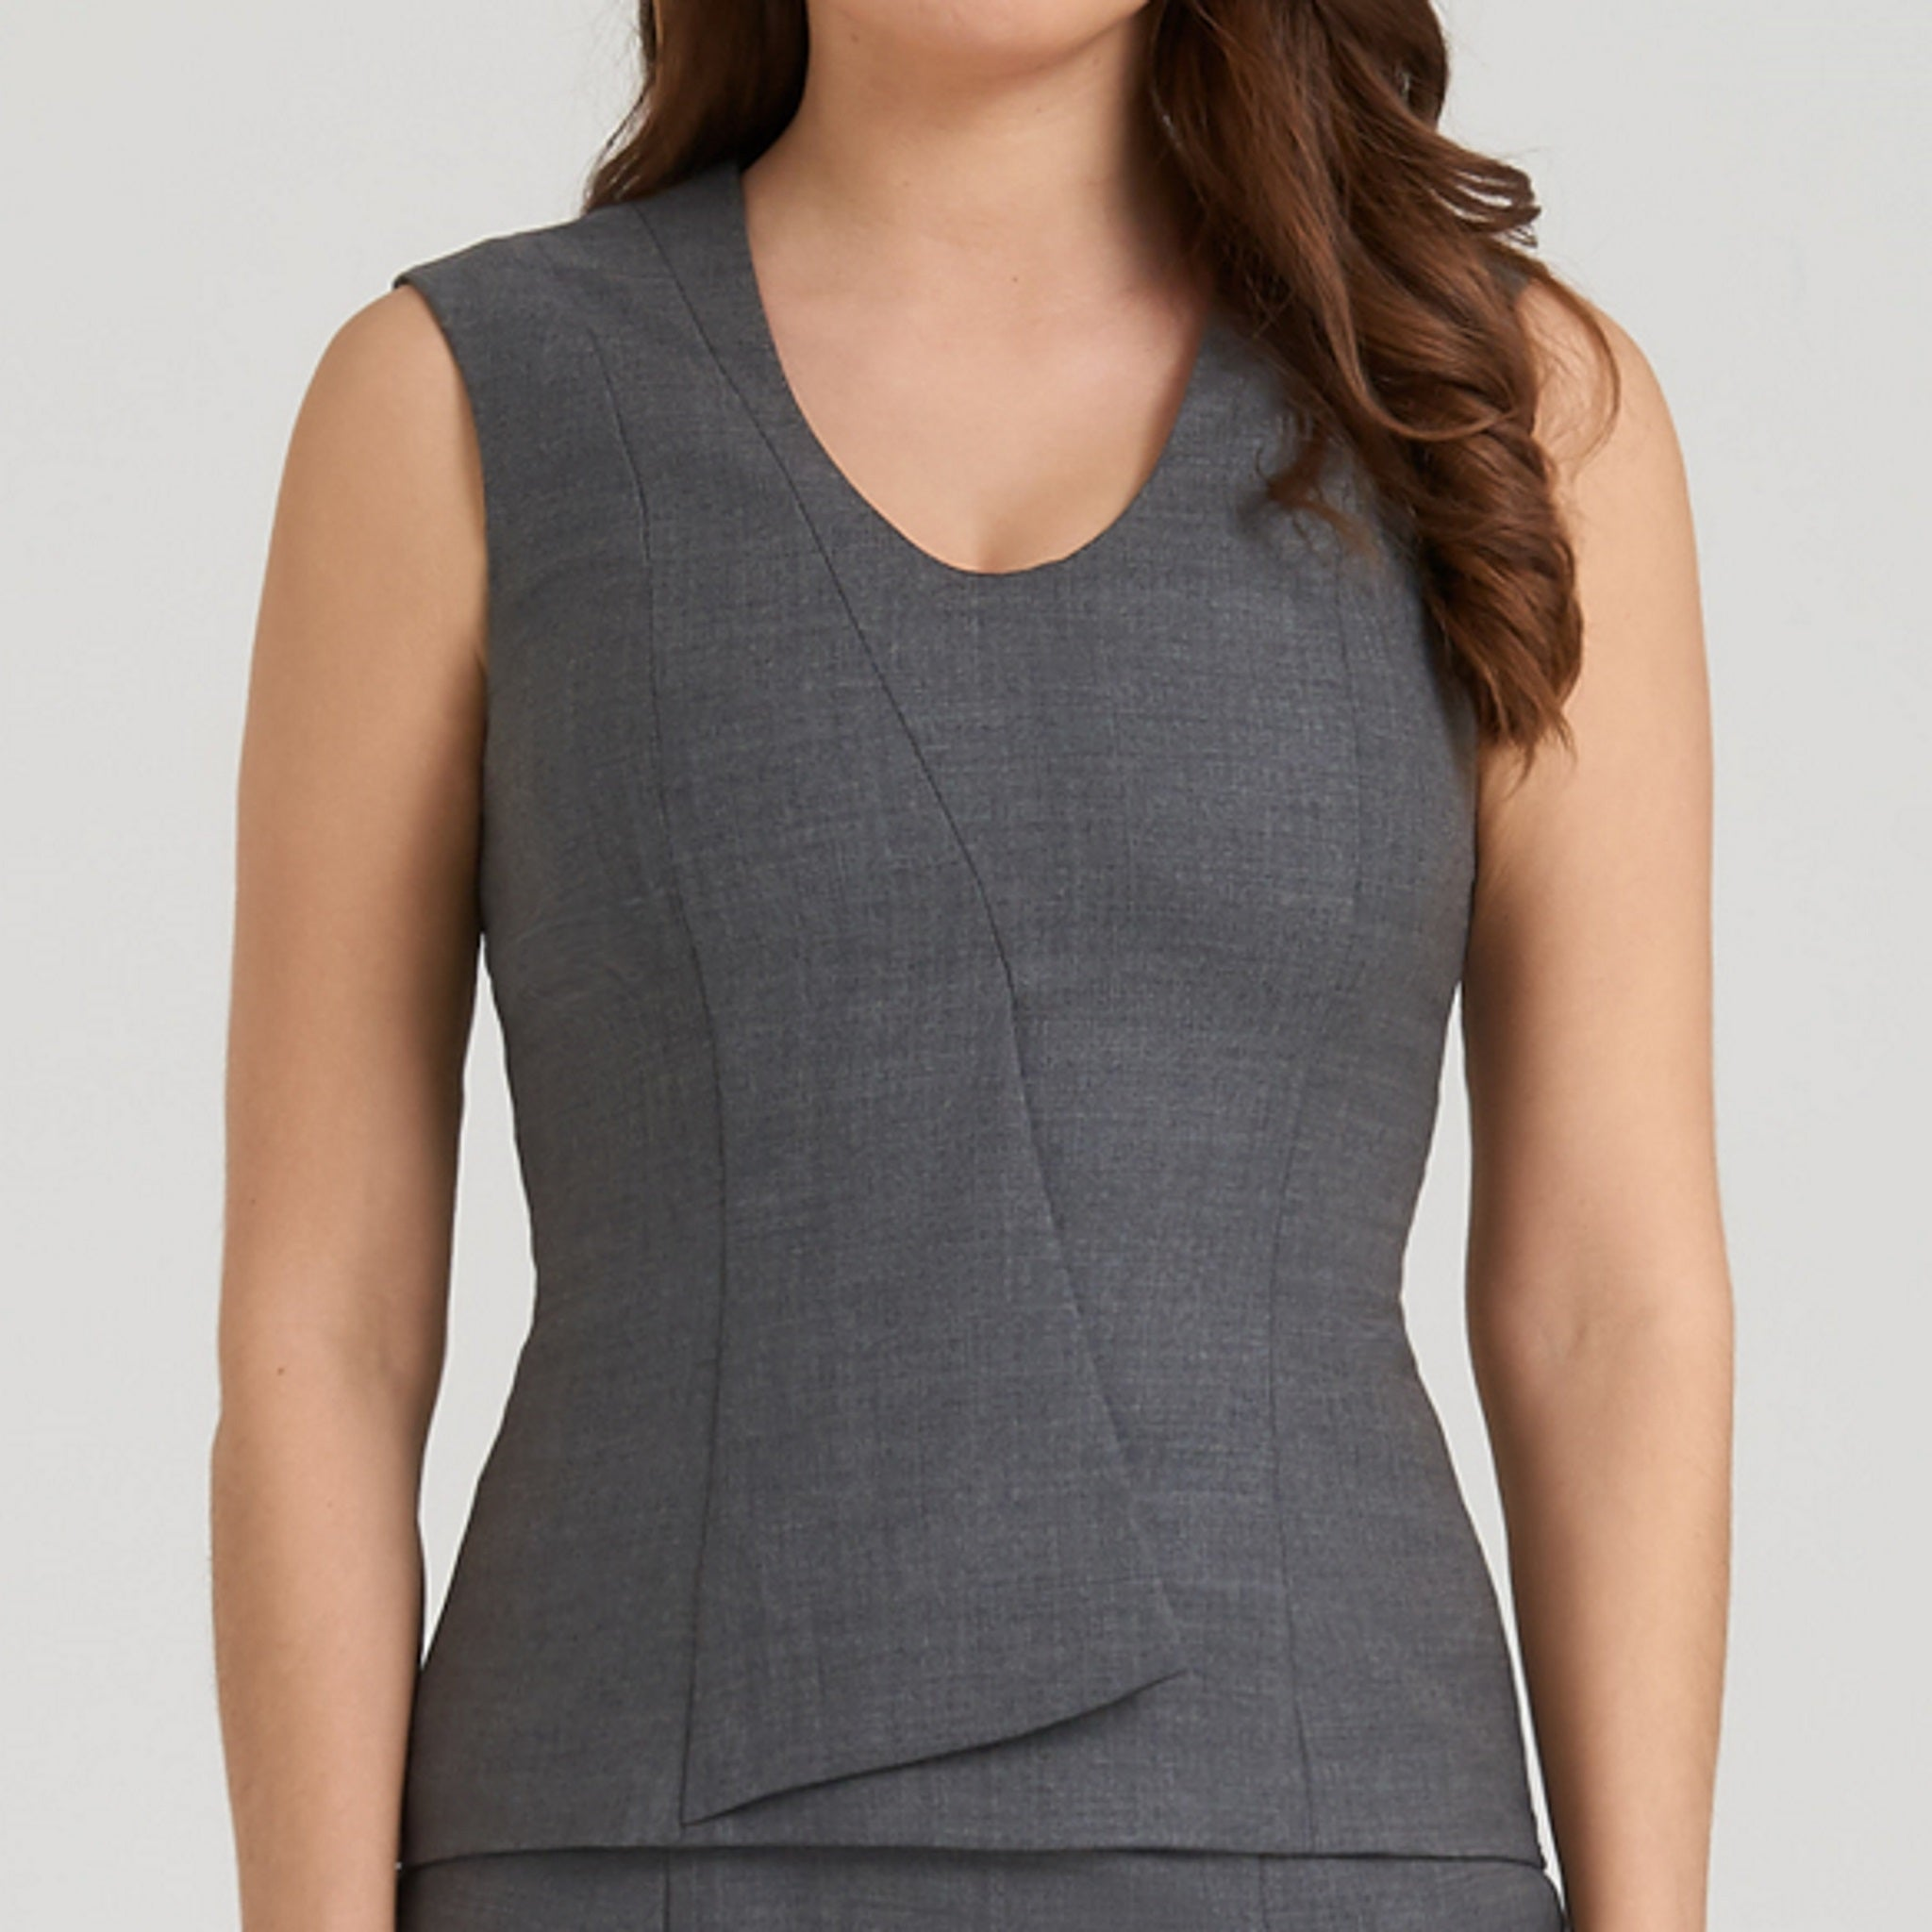 V-neck peplum blue top with a touch of stretch, breathable and thermoregulator